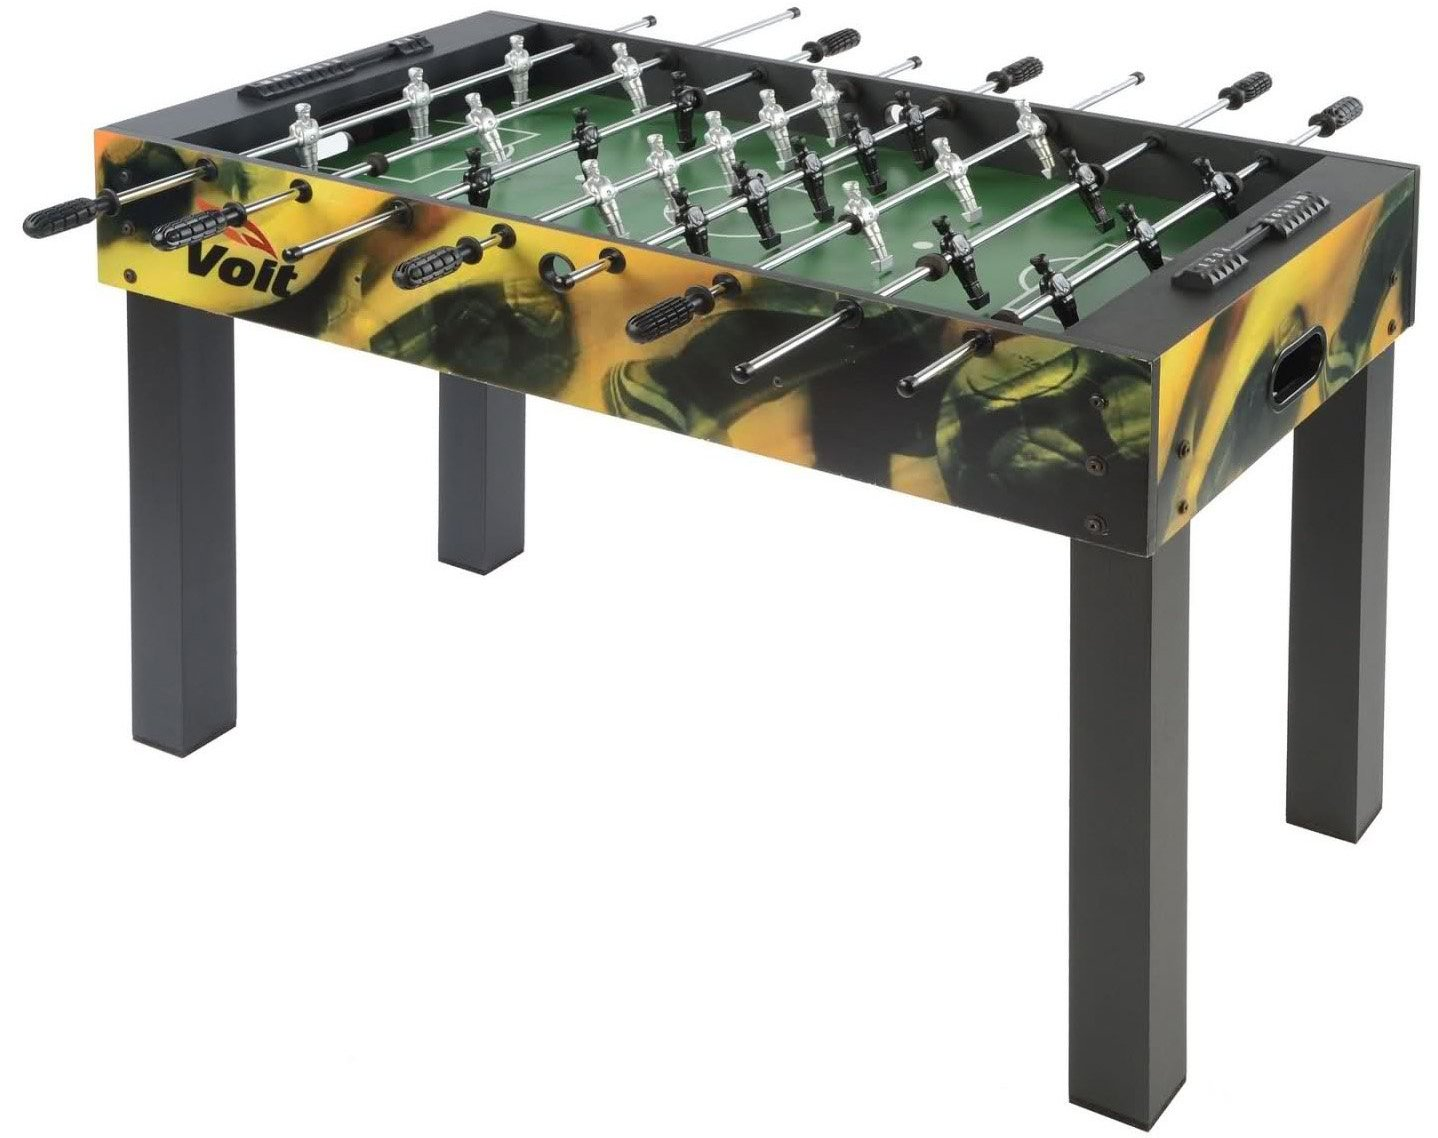 Voit Radical 48 Inch Foosball Table